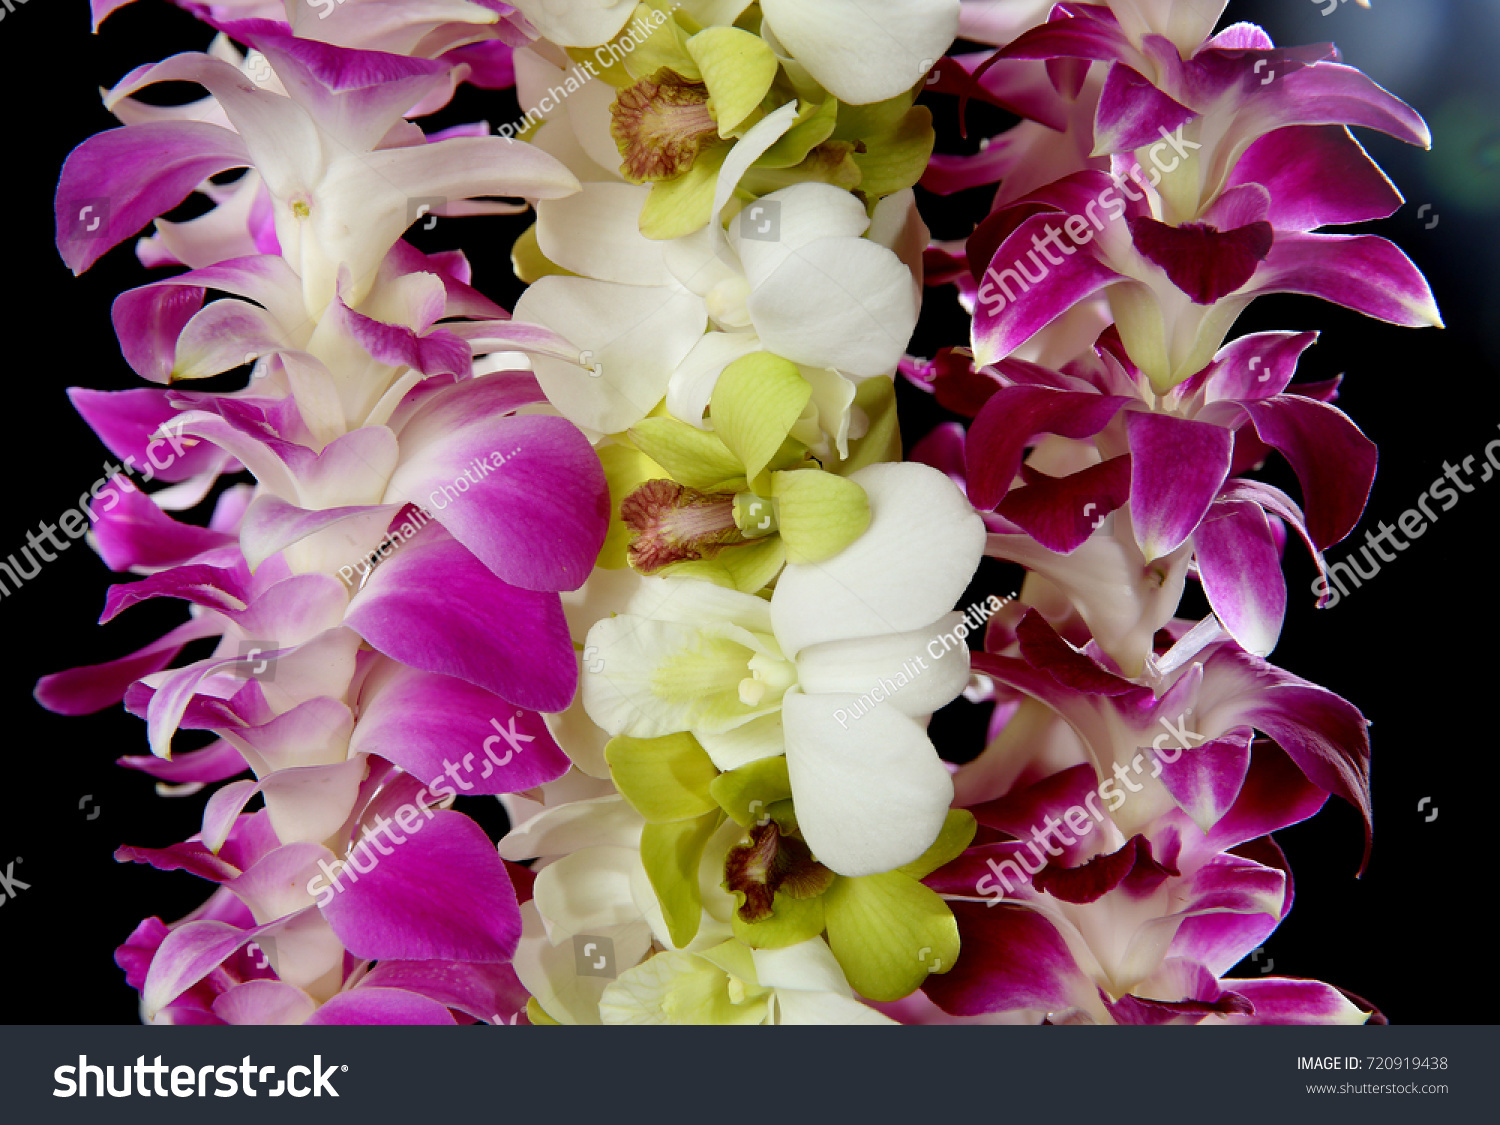 Hawaii flowers lei necklace made orchid stock photo royalty free hawaii flowers lei necklace made from orchid flower on black background izmirmasajfo Images